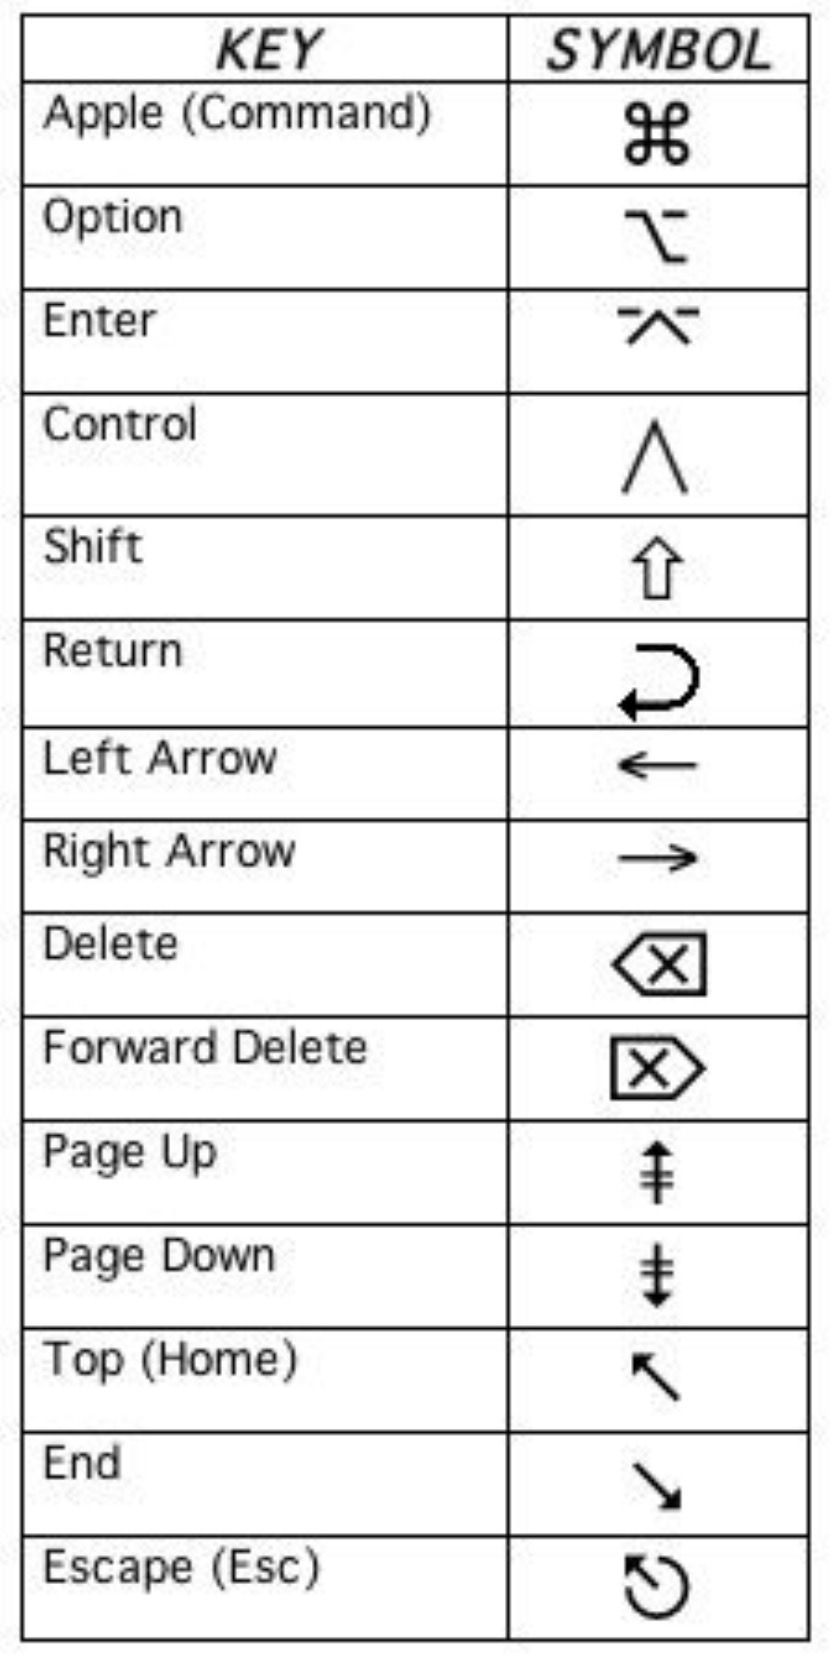 Pin by pinative on good to know pinterest macbook life hacks keyboarding symbolscomputing with bifocals a near complete list of mac keyboard shortcuts buycottarizona Gallery